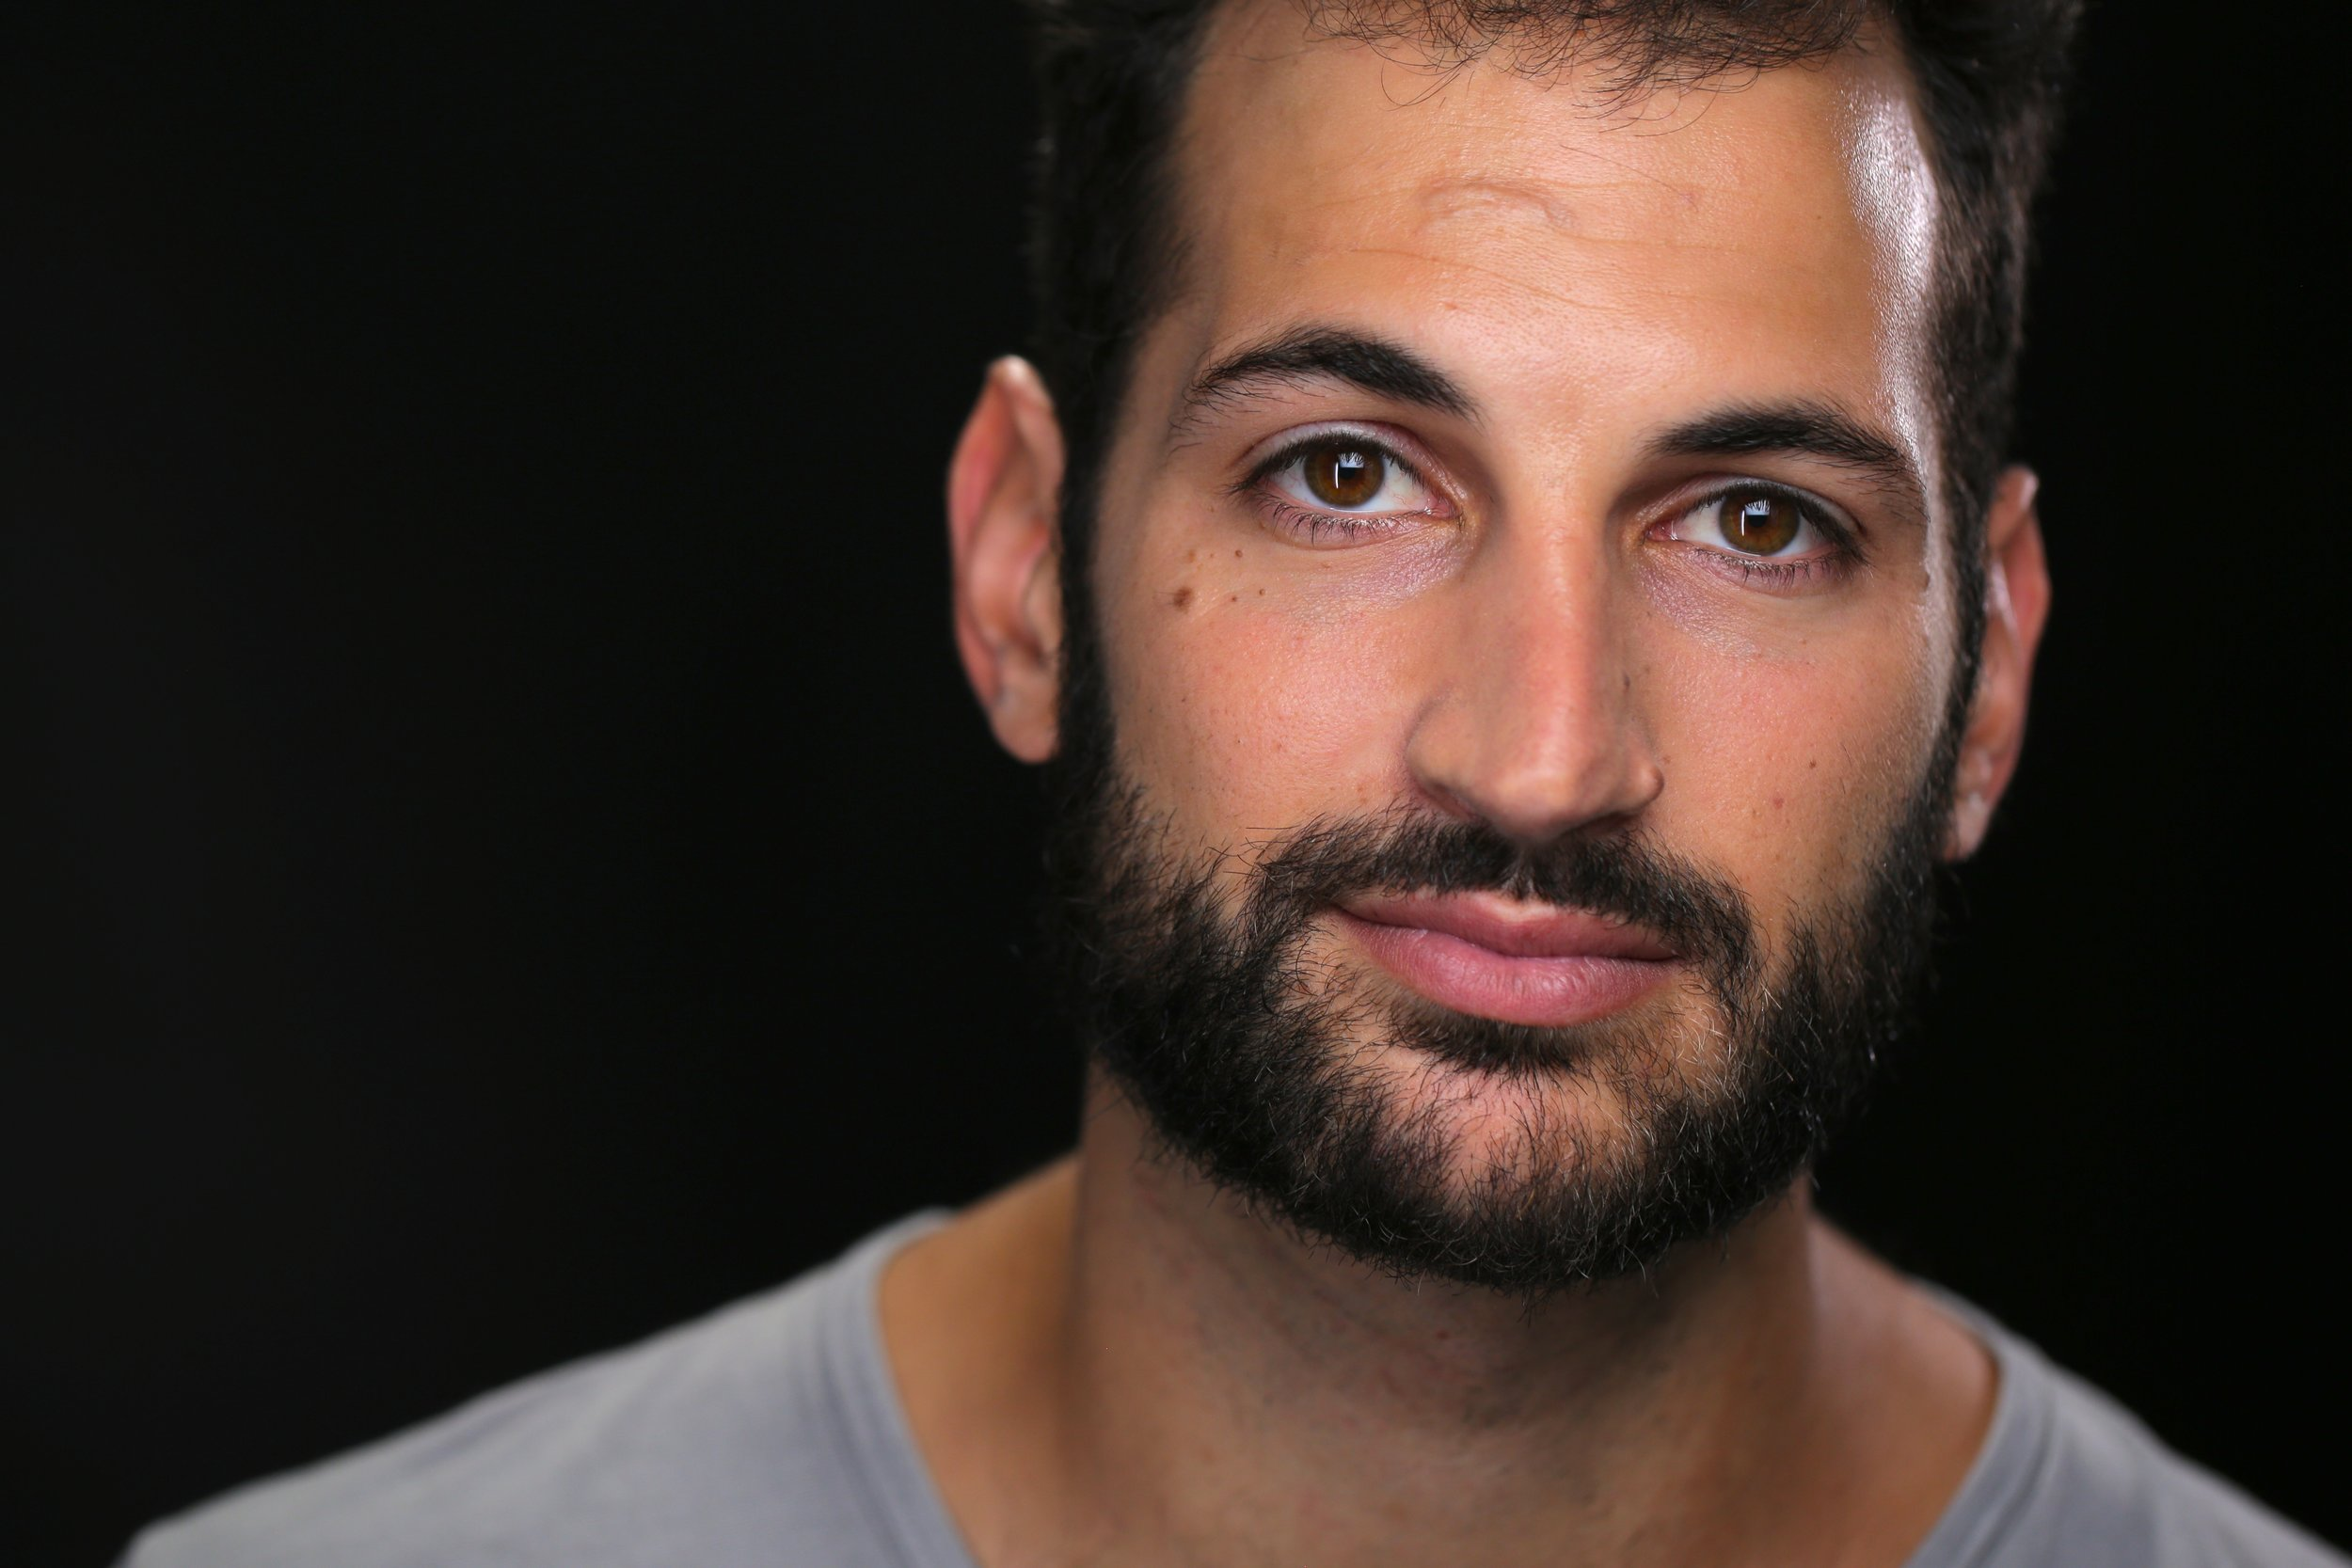 """Noam Harary    Dale   Noam is an actor residing in both NY and LA. Most recently on House of Cards (Netflix), and Madam Secretary (CBS). Other credits: Soon By You (Z, Dir. Leah Gottfried), Living Will (Matt, Lionsgate), Smokd (Dir. Tamika Miller) and is currently in Israel researching a role for an upcoming film, """"Canada"""".    www.noamharary.com"""